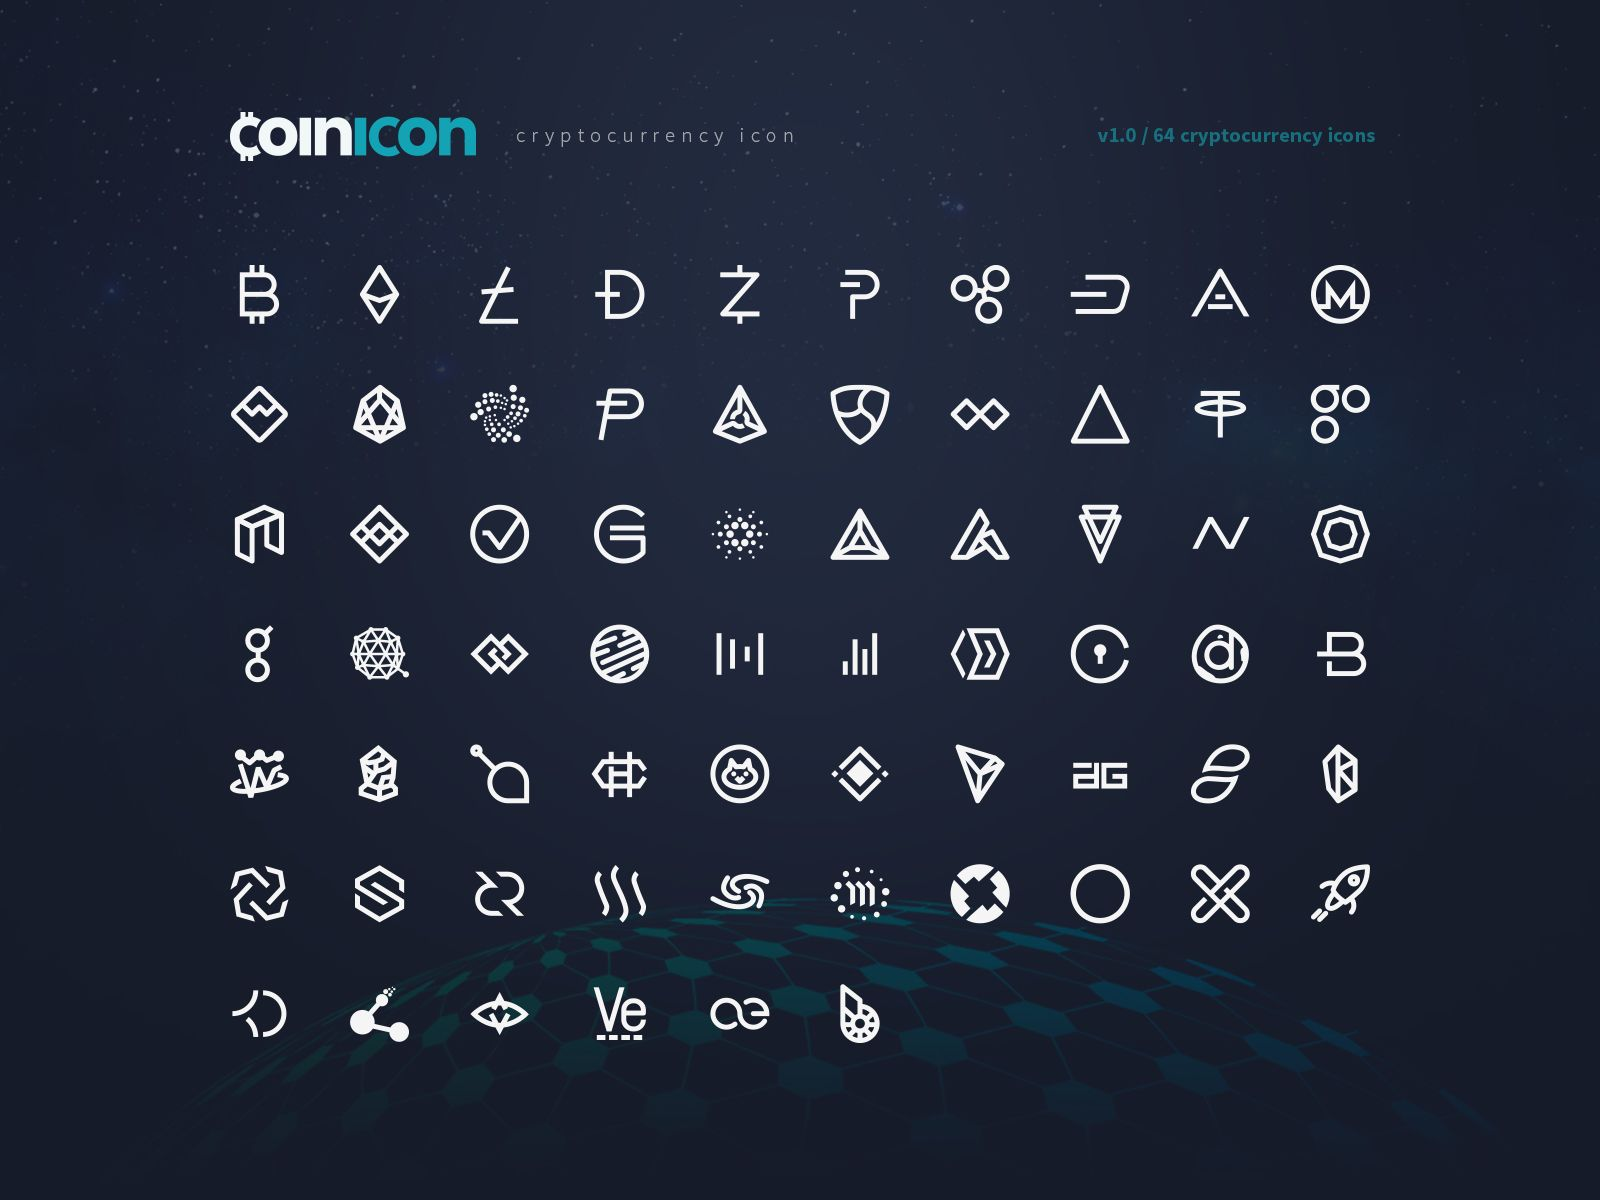 Coinicon Cryptocurrency Icon Fonts & CSS Bundle Icon